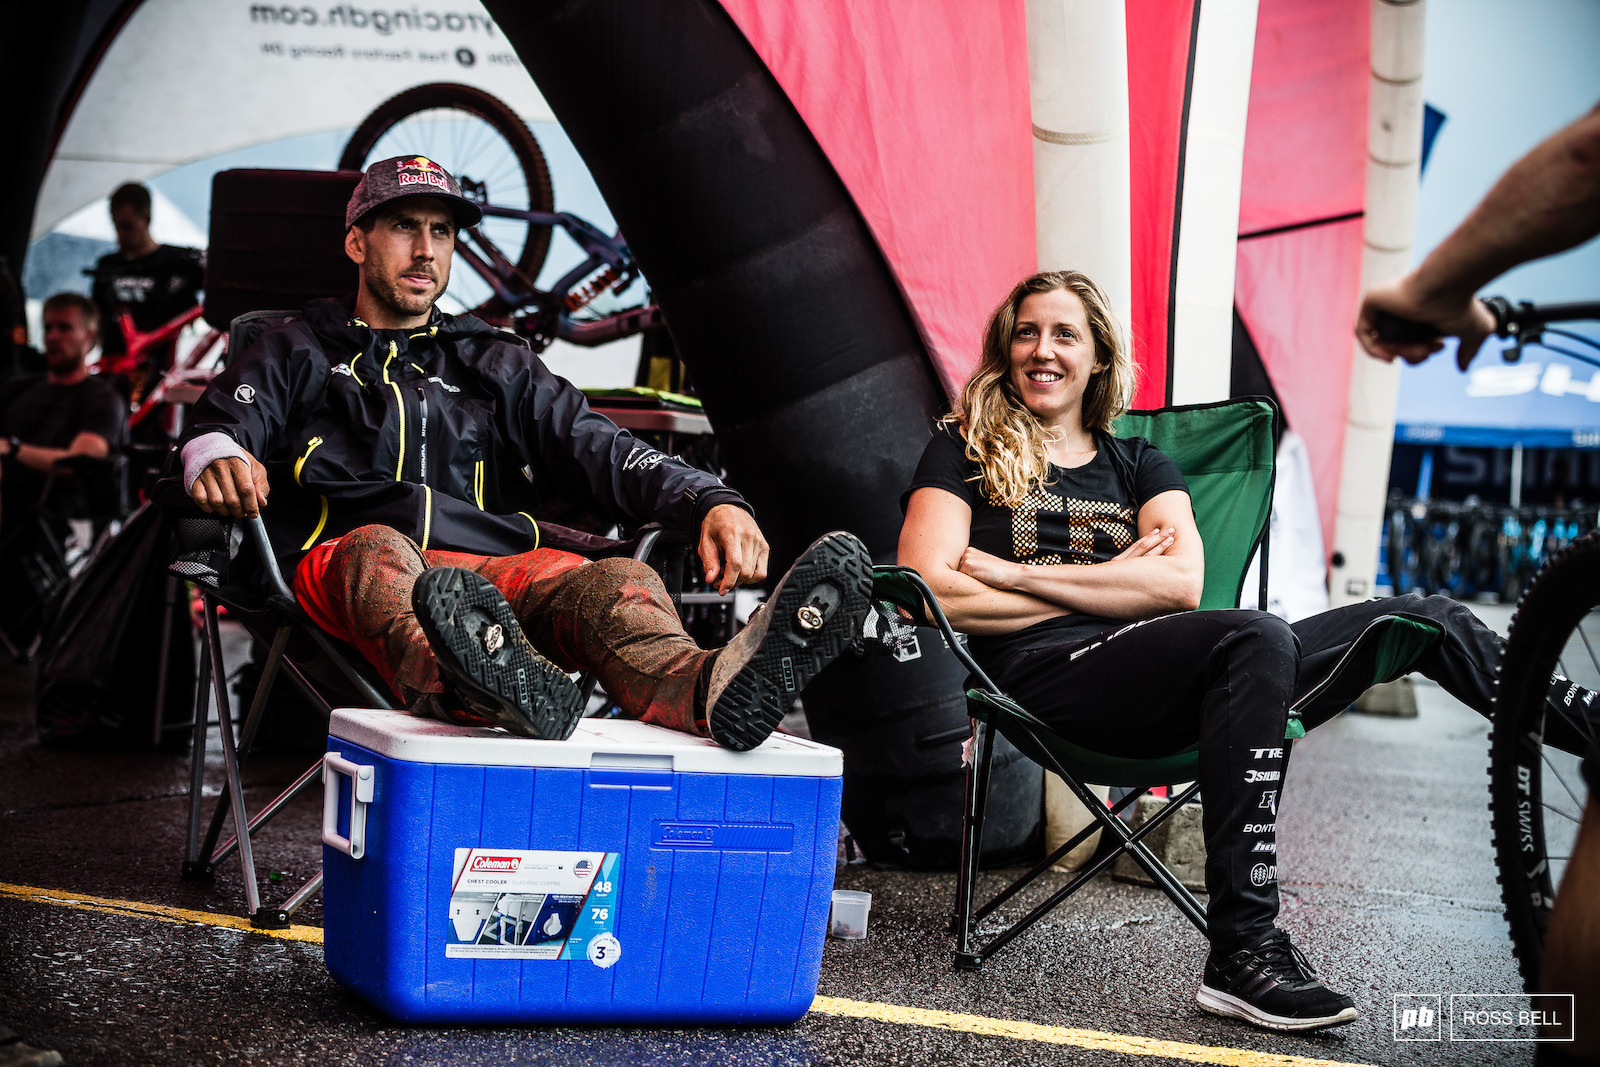 The Atherton siblings putting their feet up whilst waiting for the track to reopen.